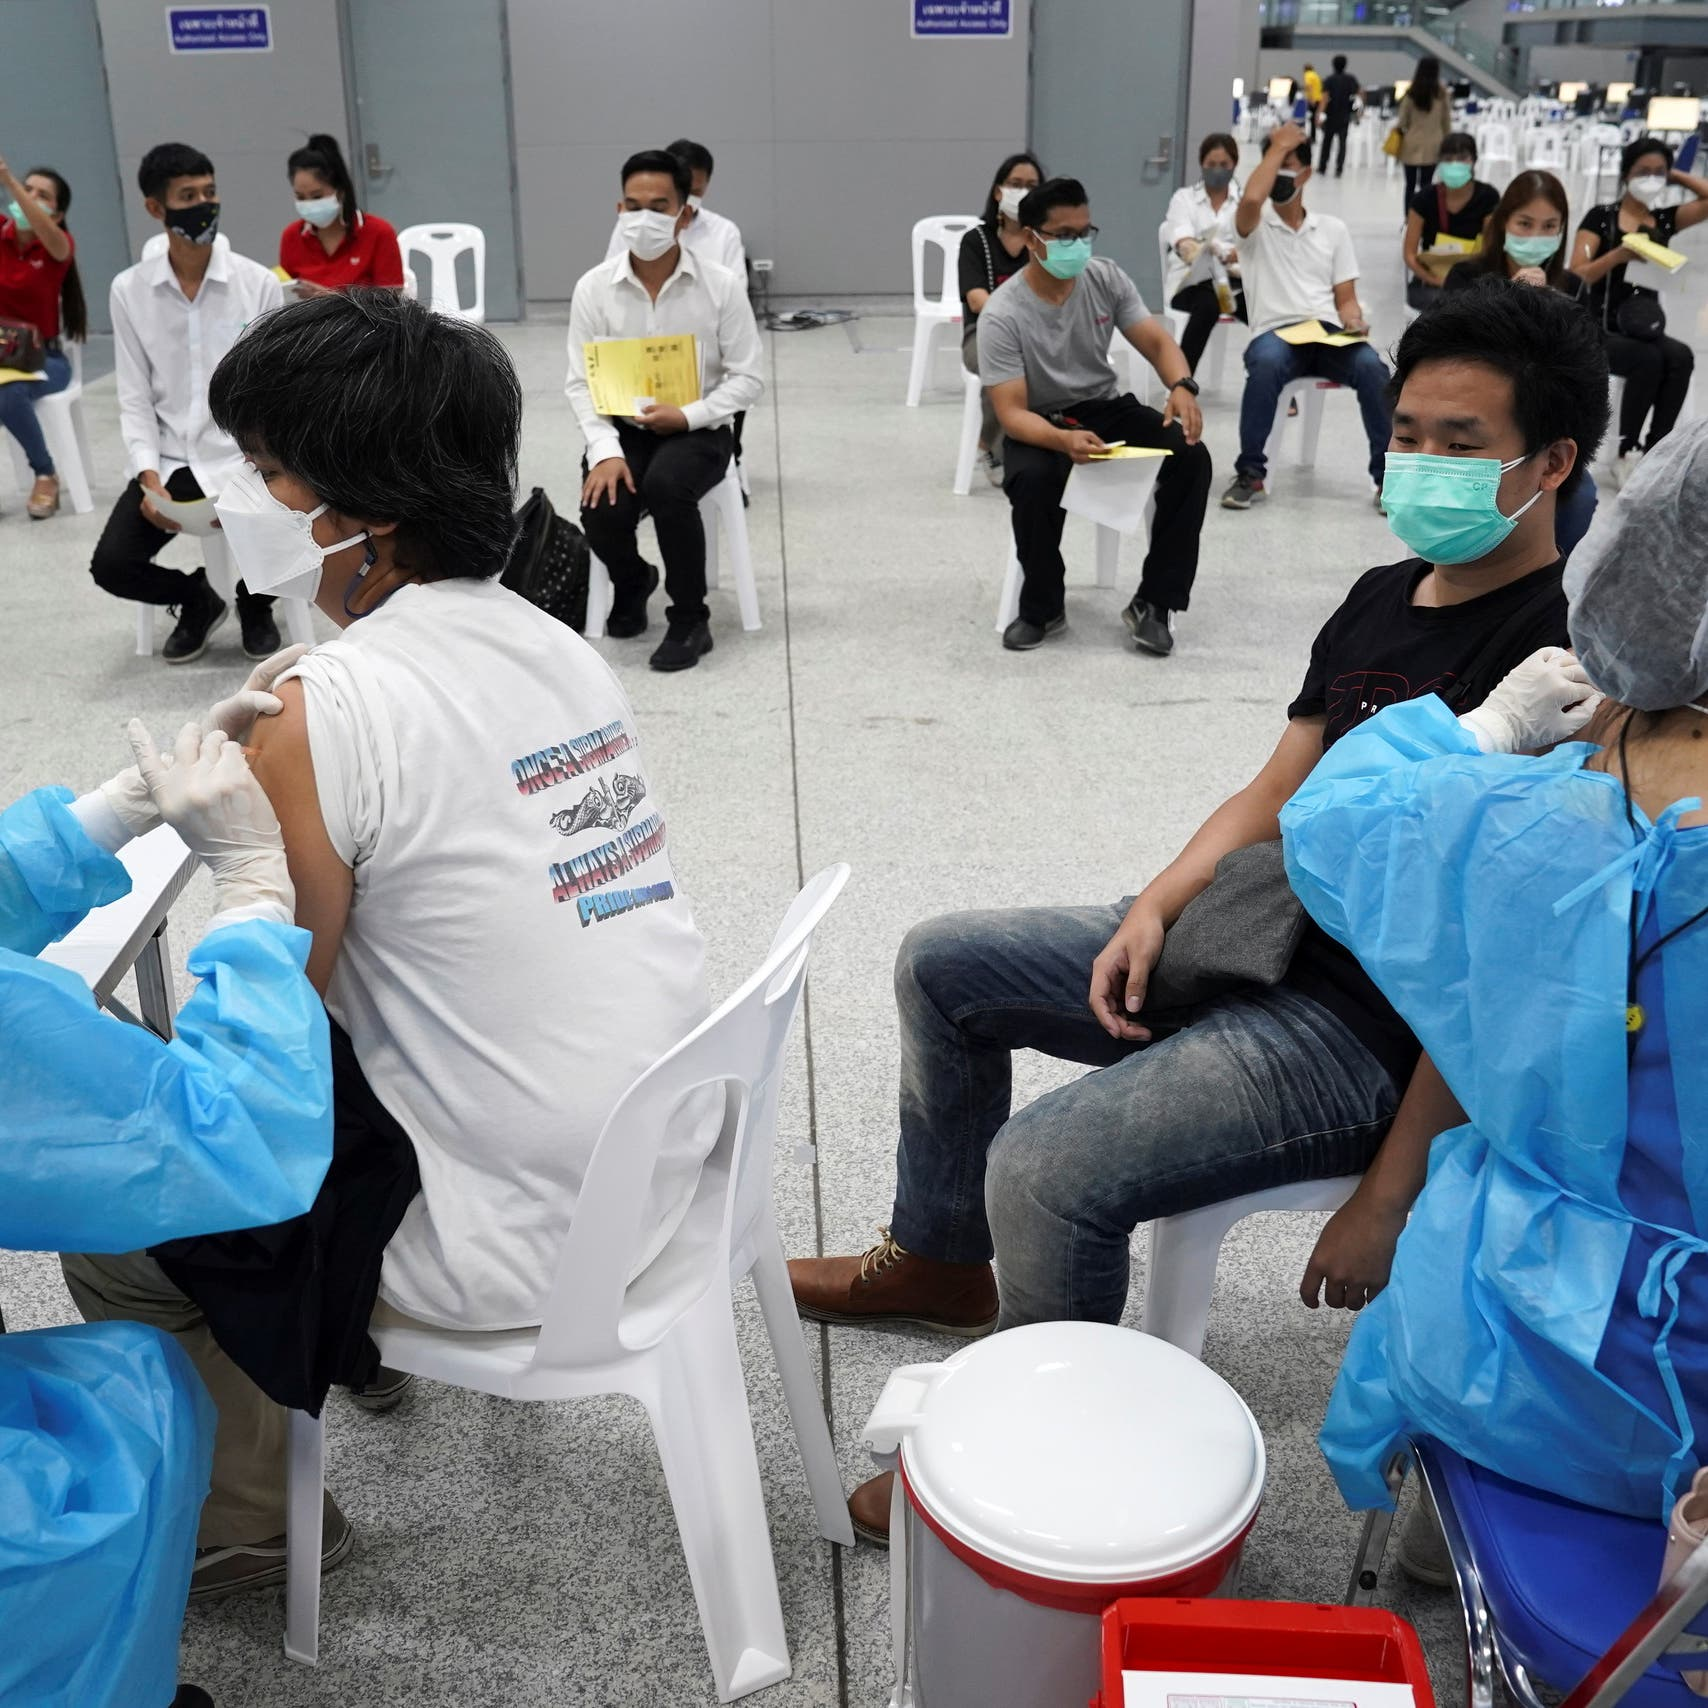 Explainer: Are Chinese COVID-19 vaccines effective against the Delta variant?